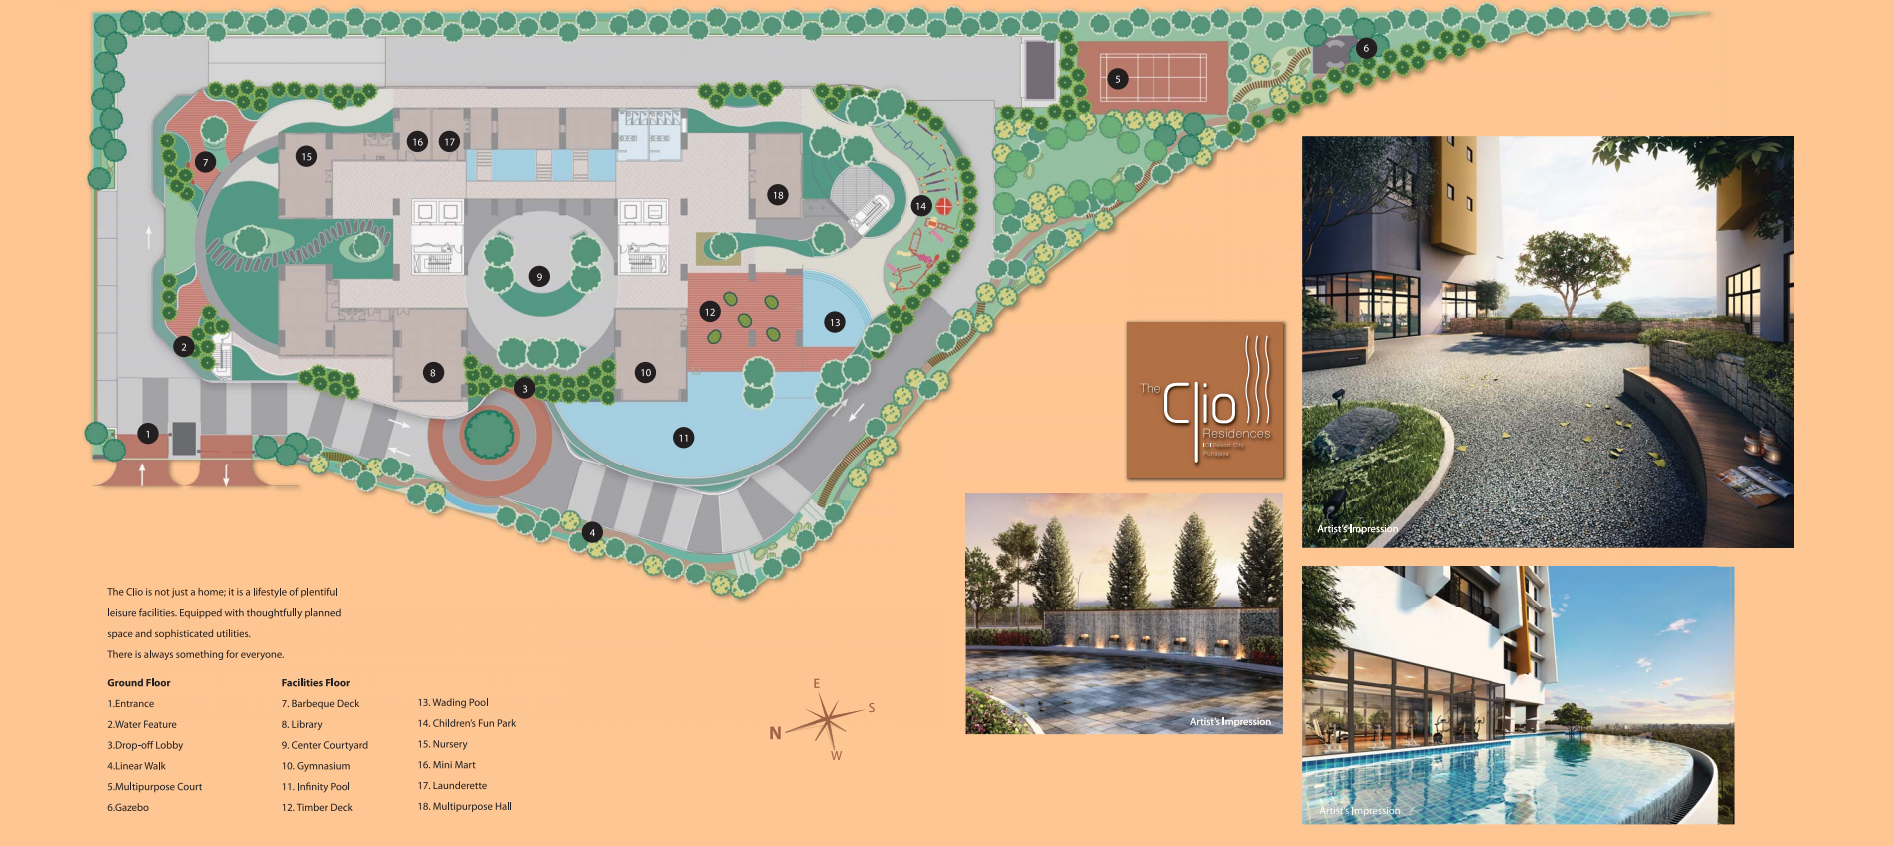 Site Plan of The Clio Residences